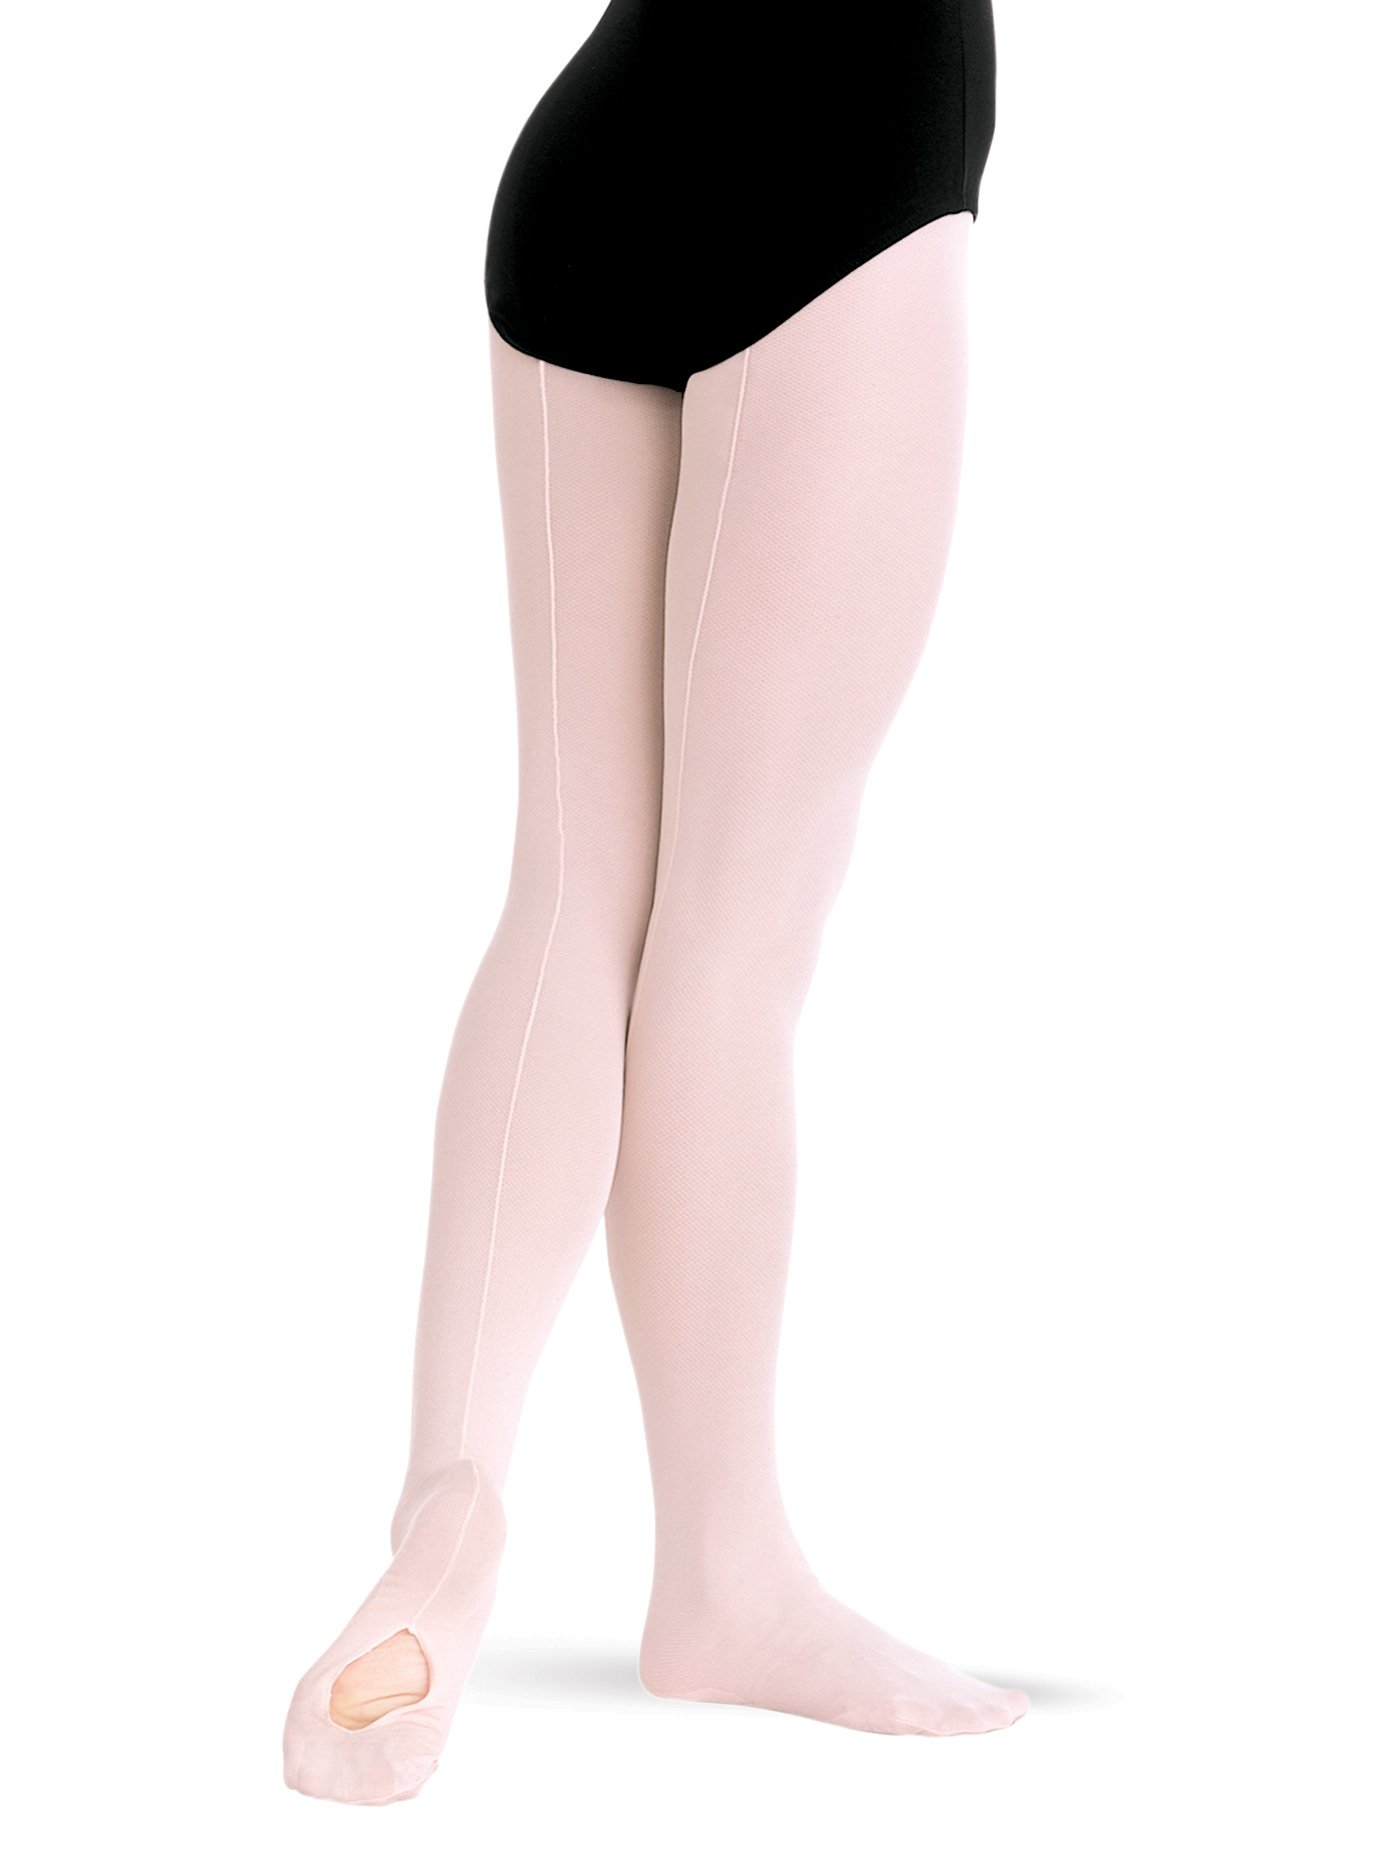 Adult TotalSTRETCH Mesh Seamed Convertible Tights,A45BPKT,Ballet Pink,Toddler by Body Wrappers